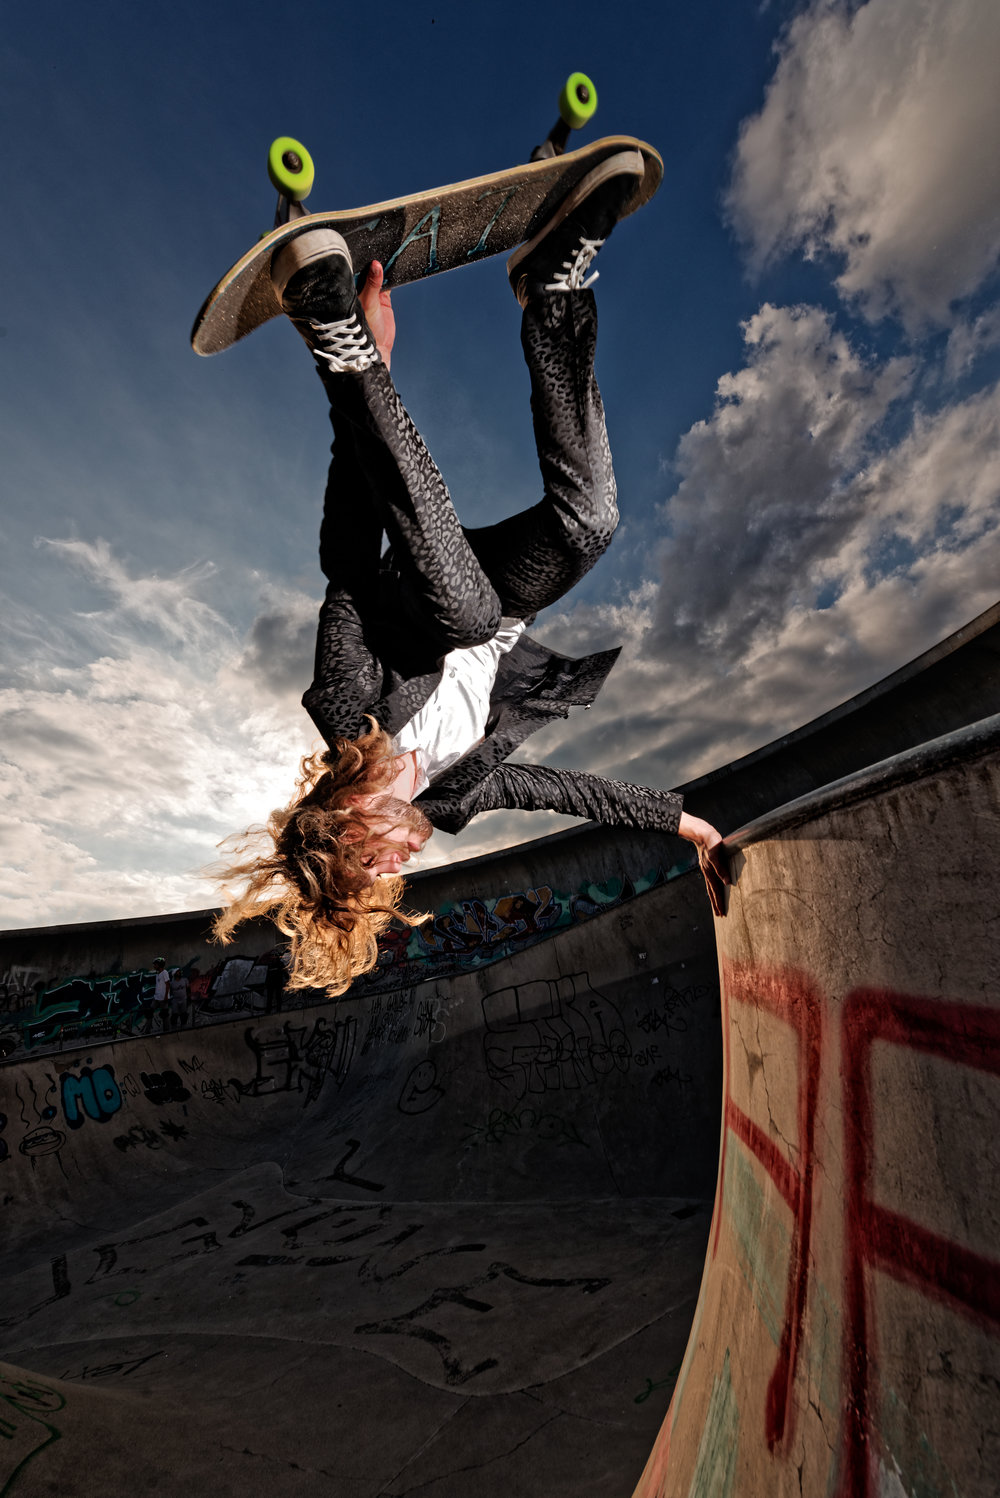 Tom Cat Skater Skateboarder München Model Skateboarding Stuntman Germany .jpg